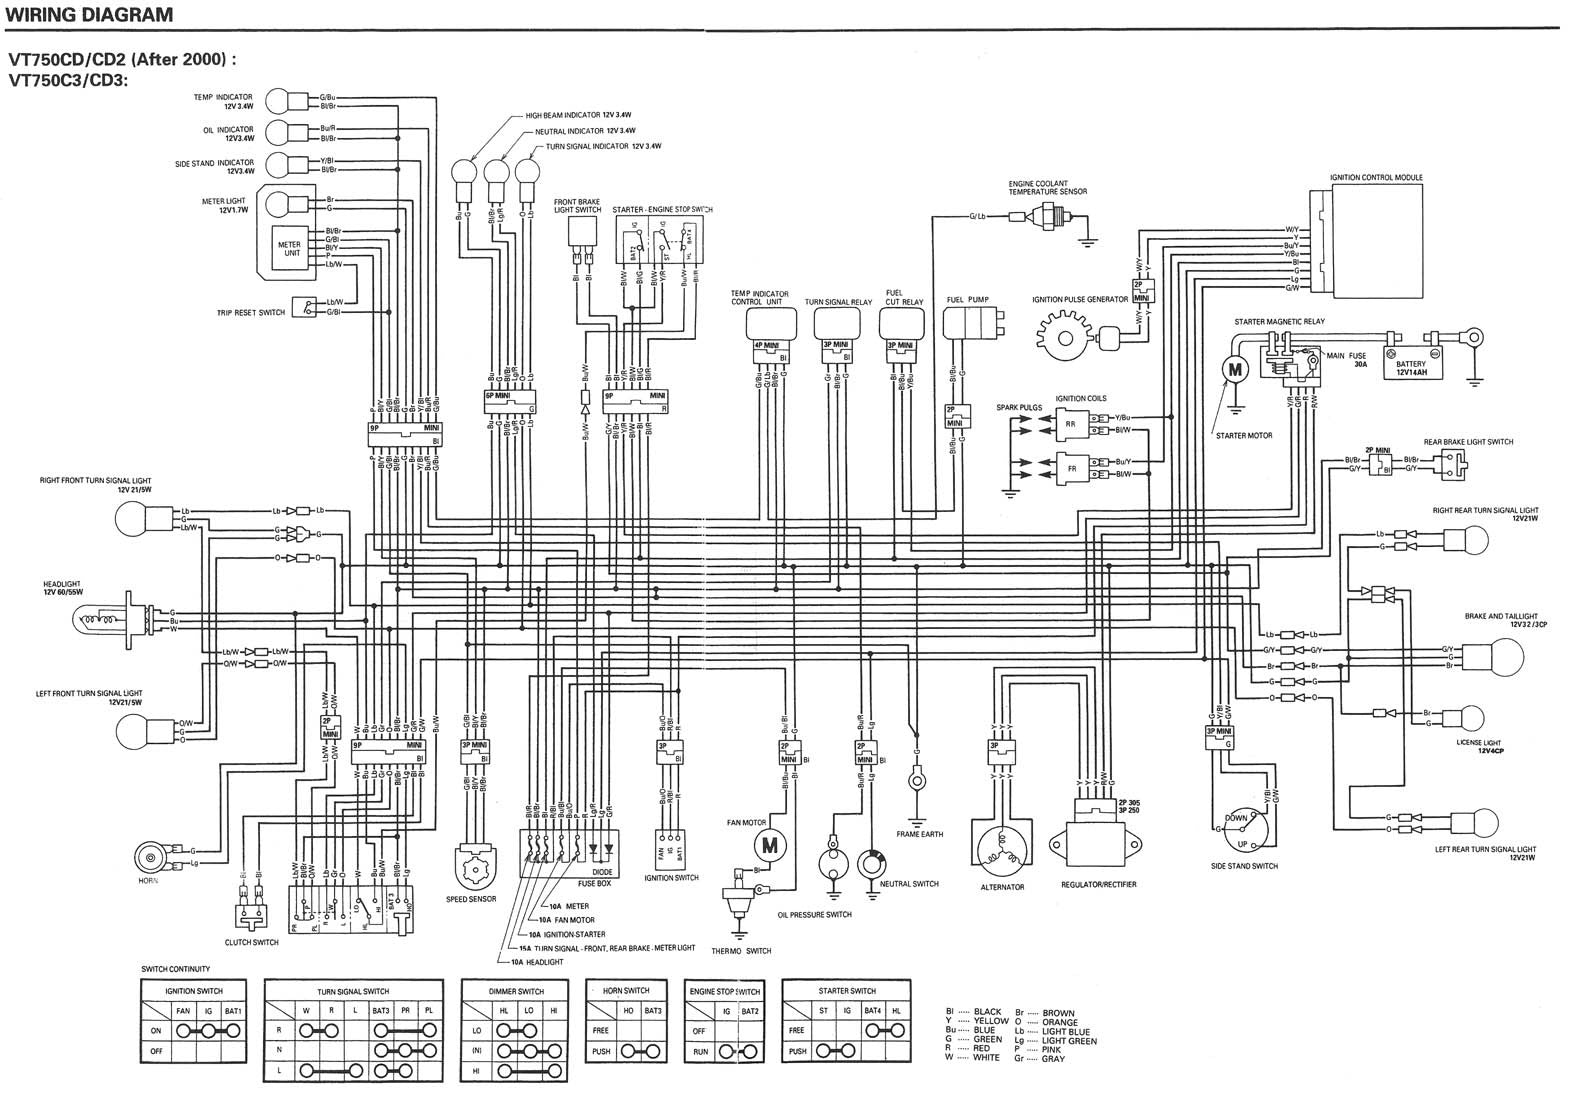 1983 nighthawk 650 ignition system wiring diagram wiring library  1983 nighthawk 650 ignition system wiring diagram